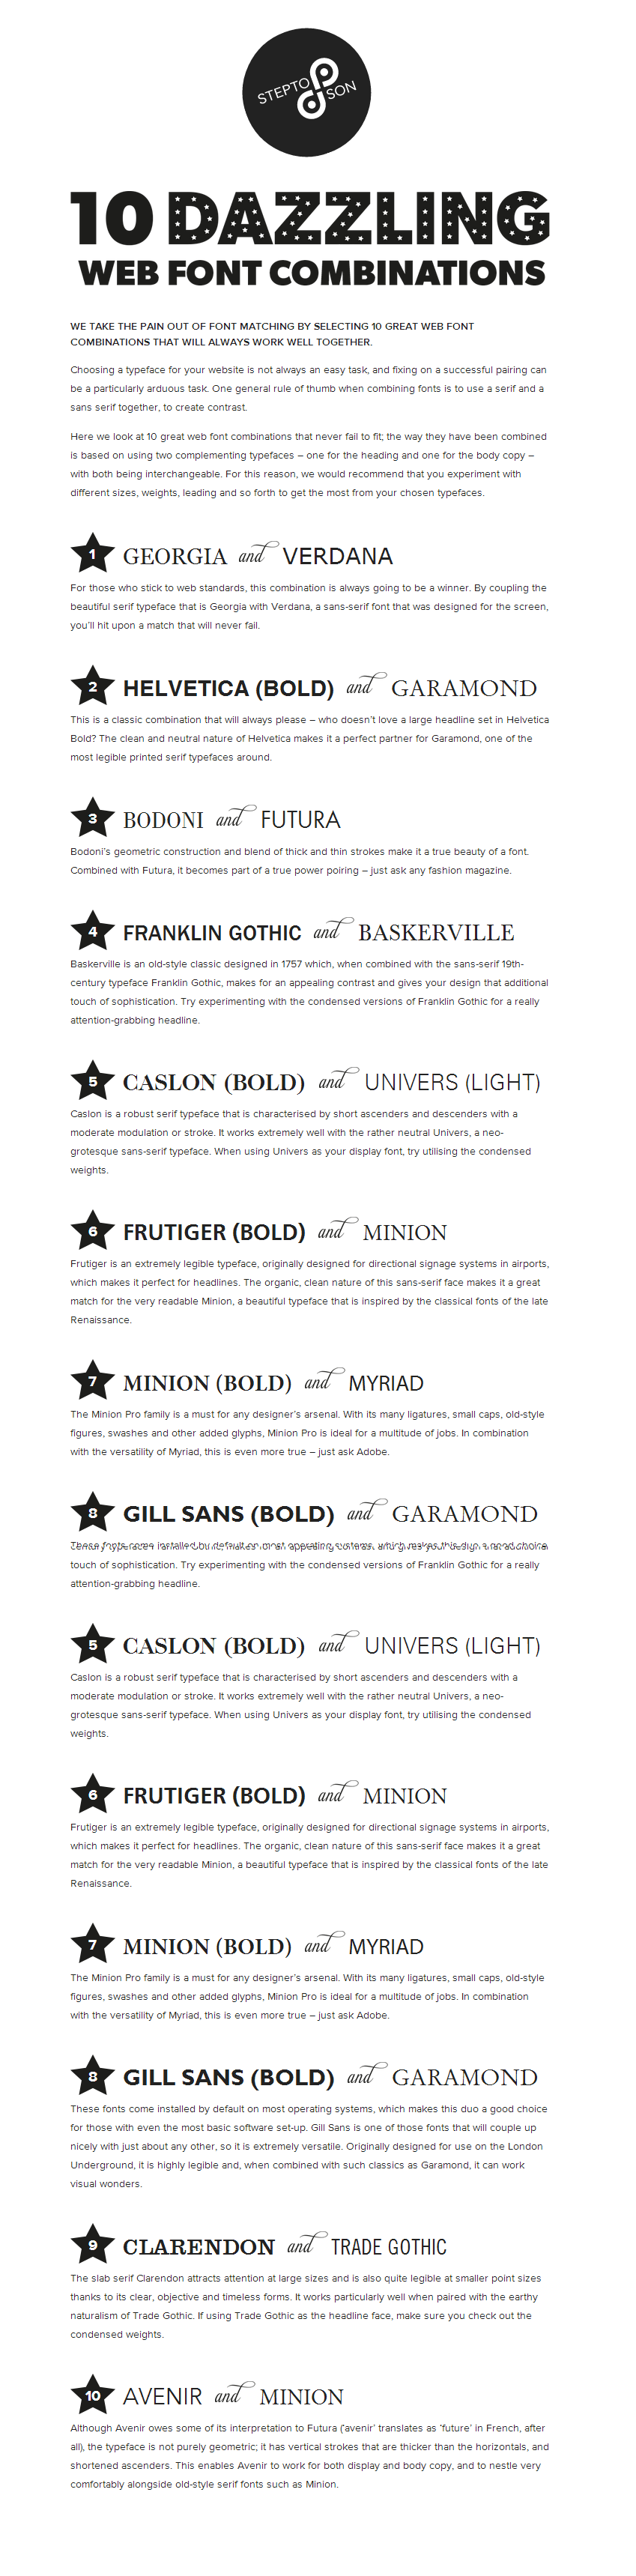 Resume Font Inspiration 48 Great Web Font Combinations Stepto Son Graphic Design And